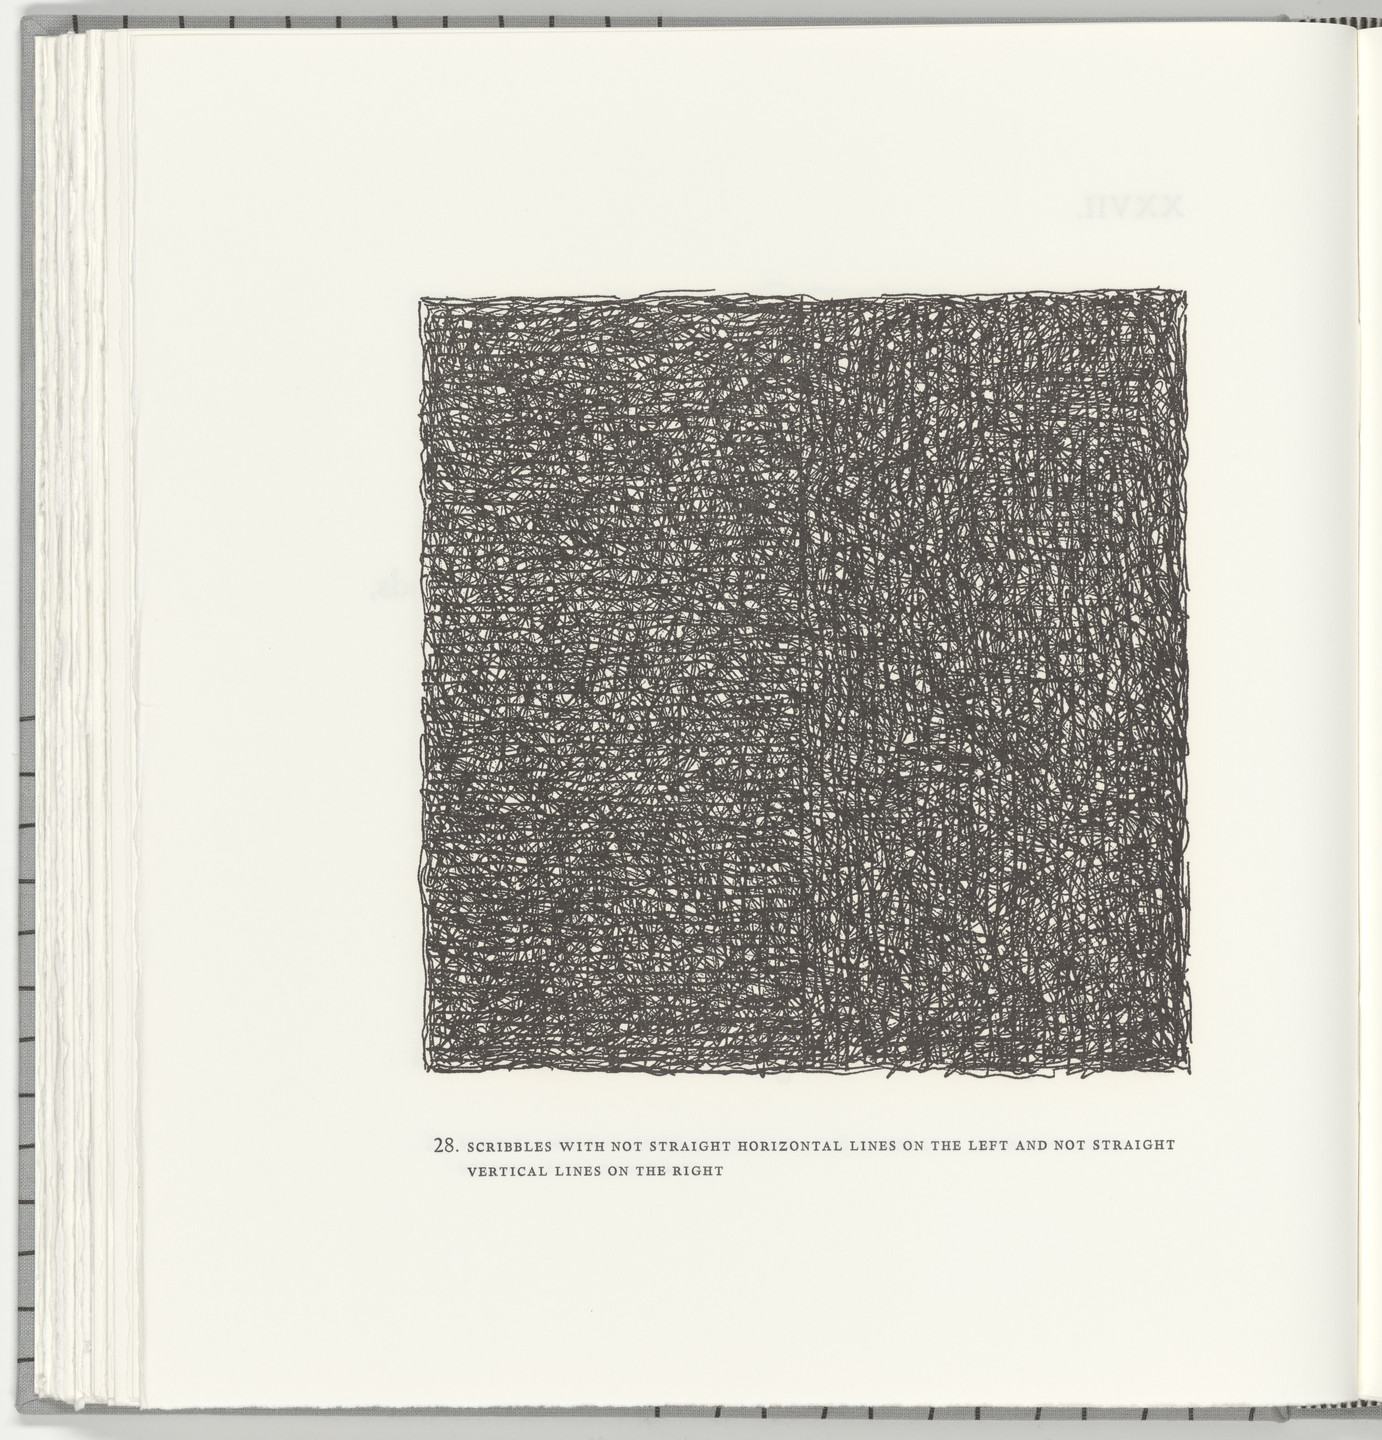 Sol LeWitt. Scribbles with Not Straight Horizontal Lines on the Left and Not Straight Vertical Lines on the Right (plate 28) from Squarings. 2003